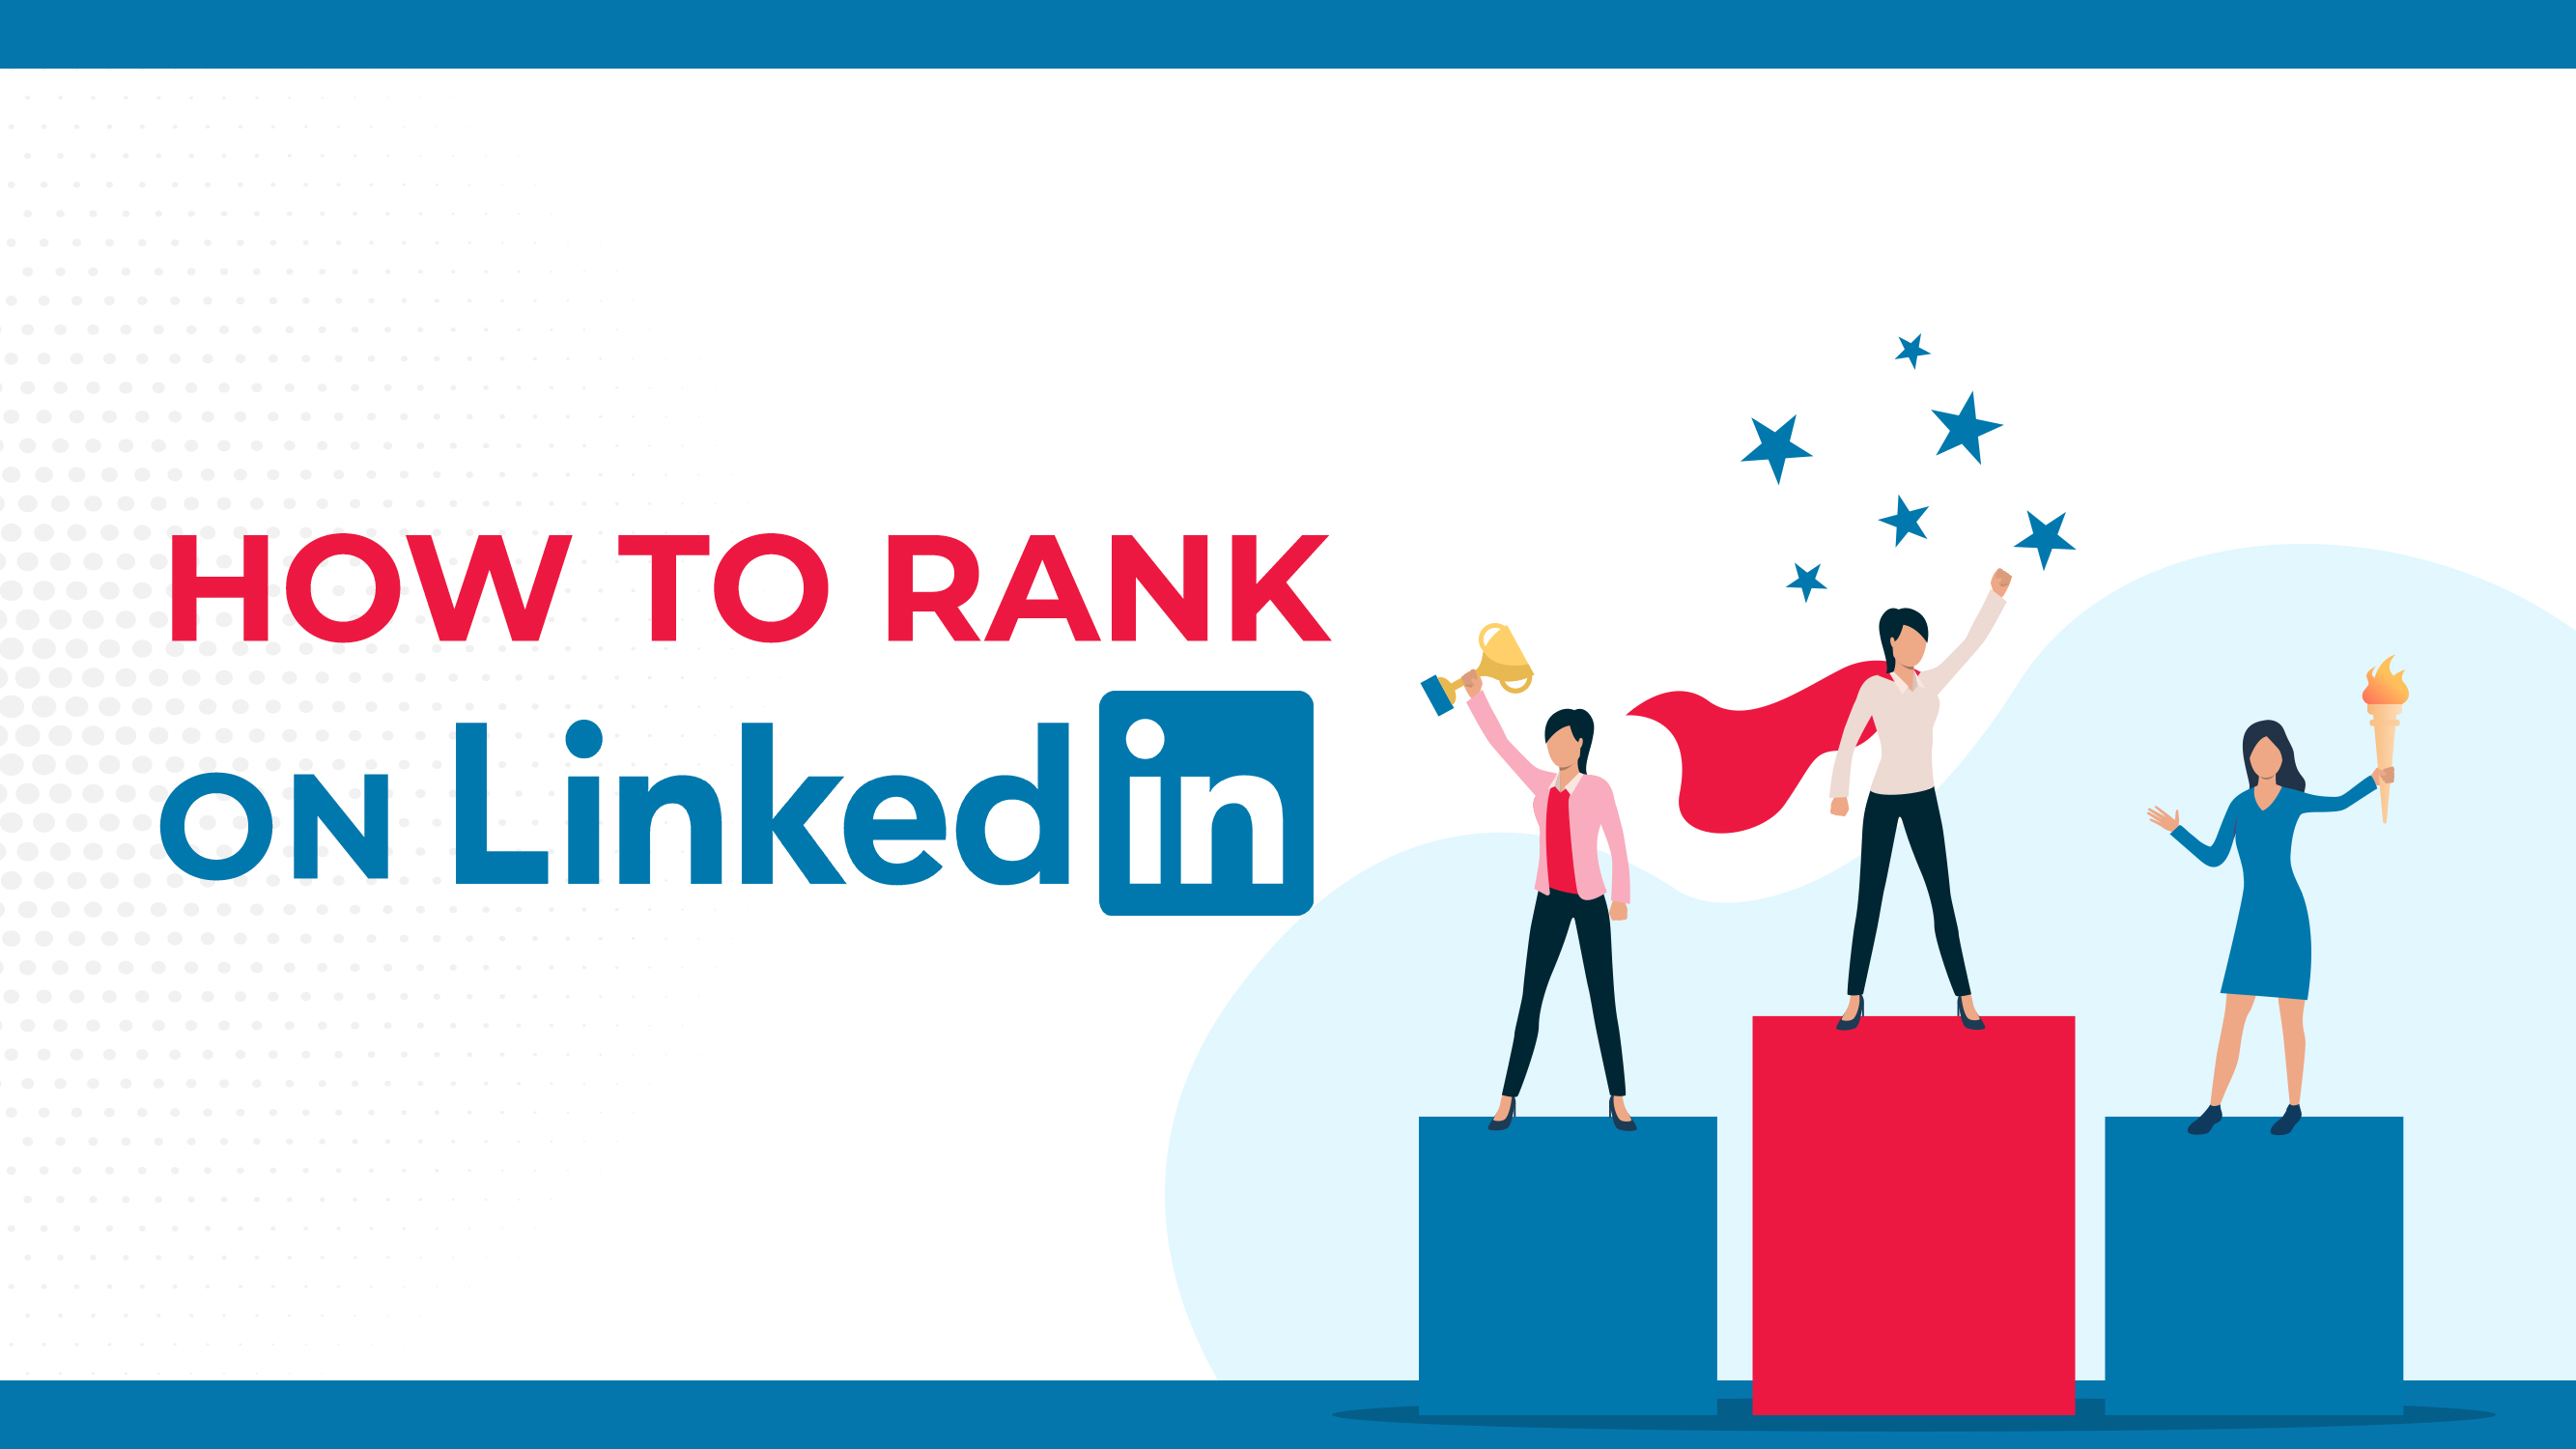 Como Classificar no LinkedIn